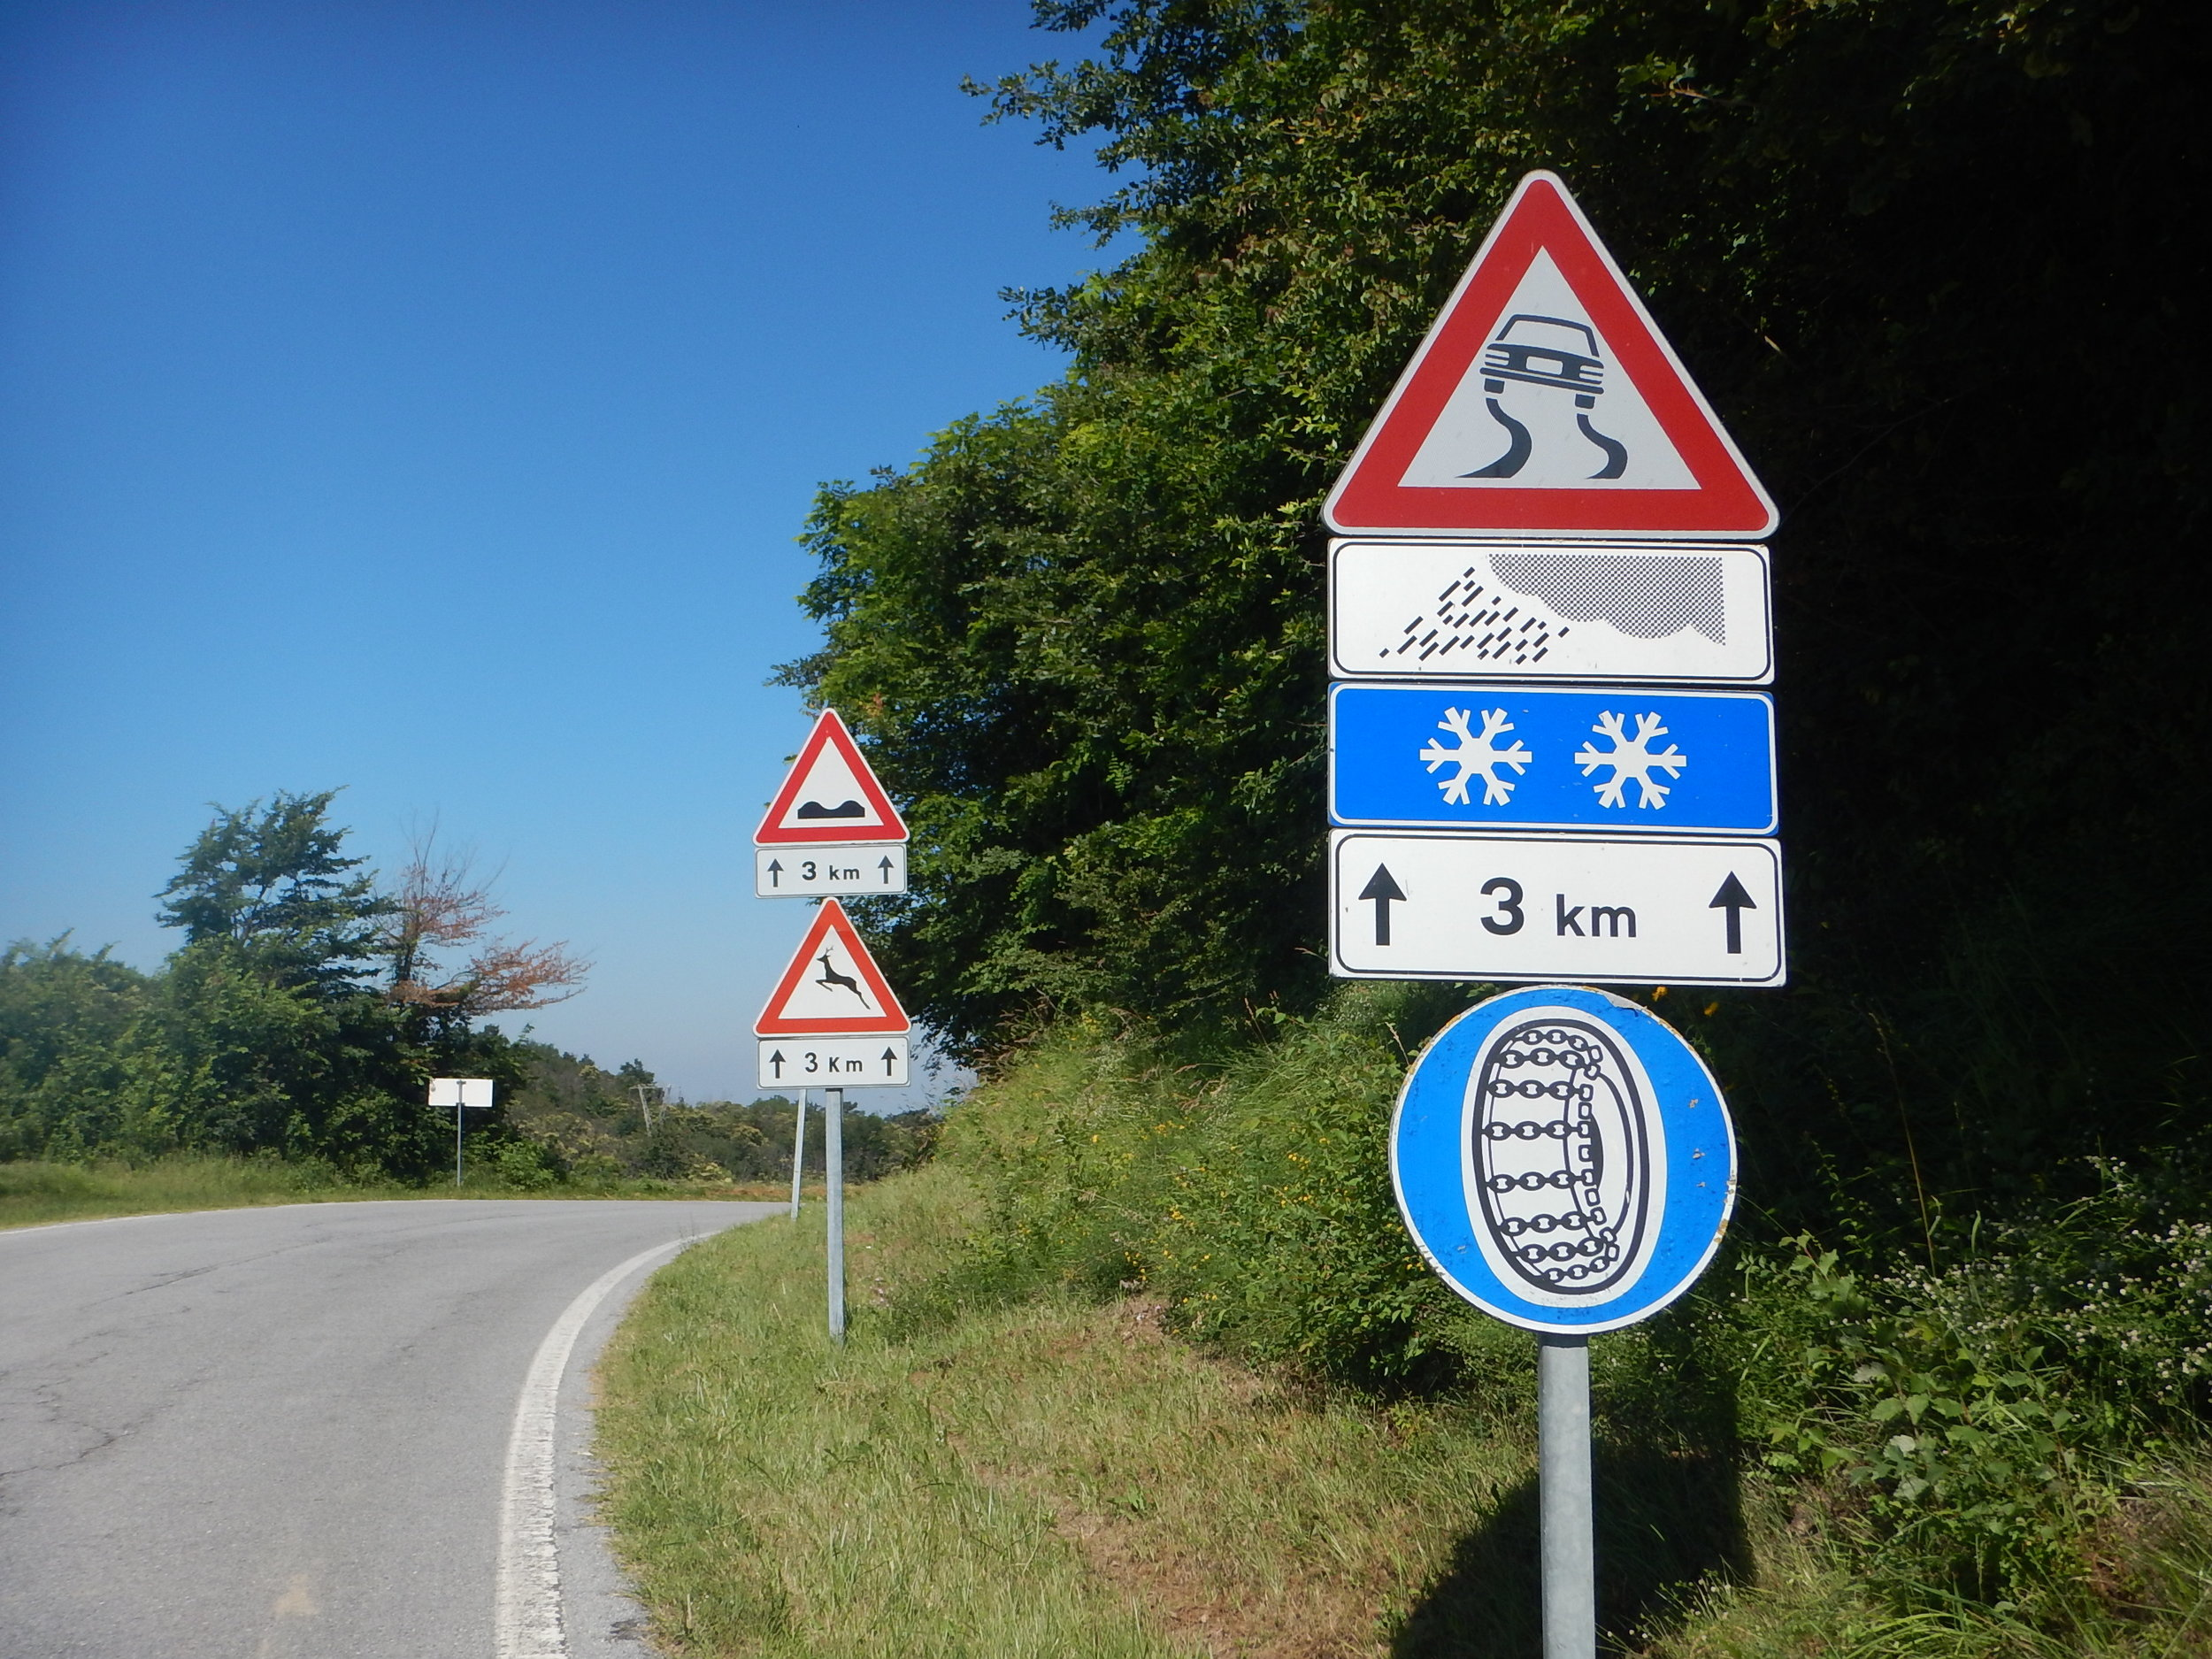 S for Snow and Snow chains Signs in Italy